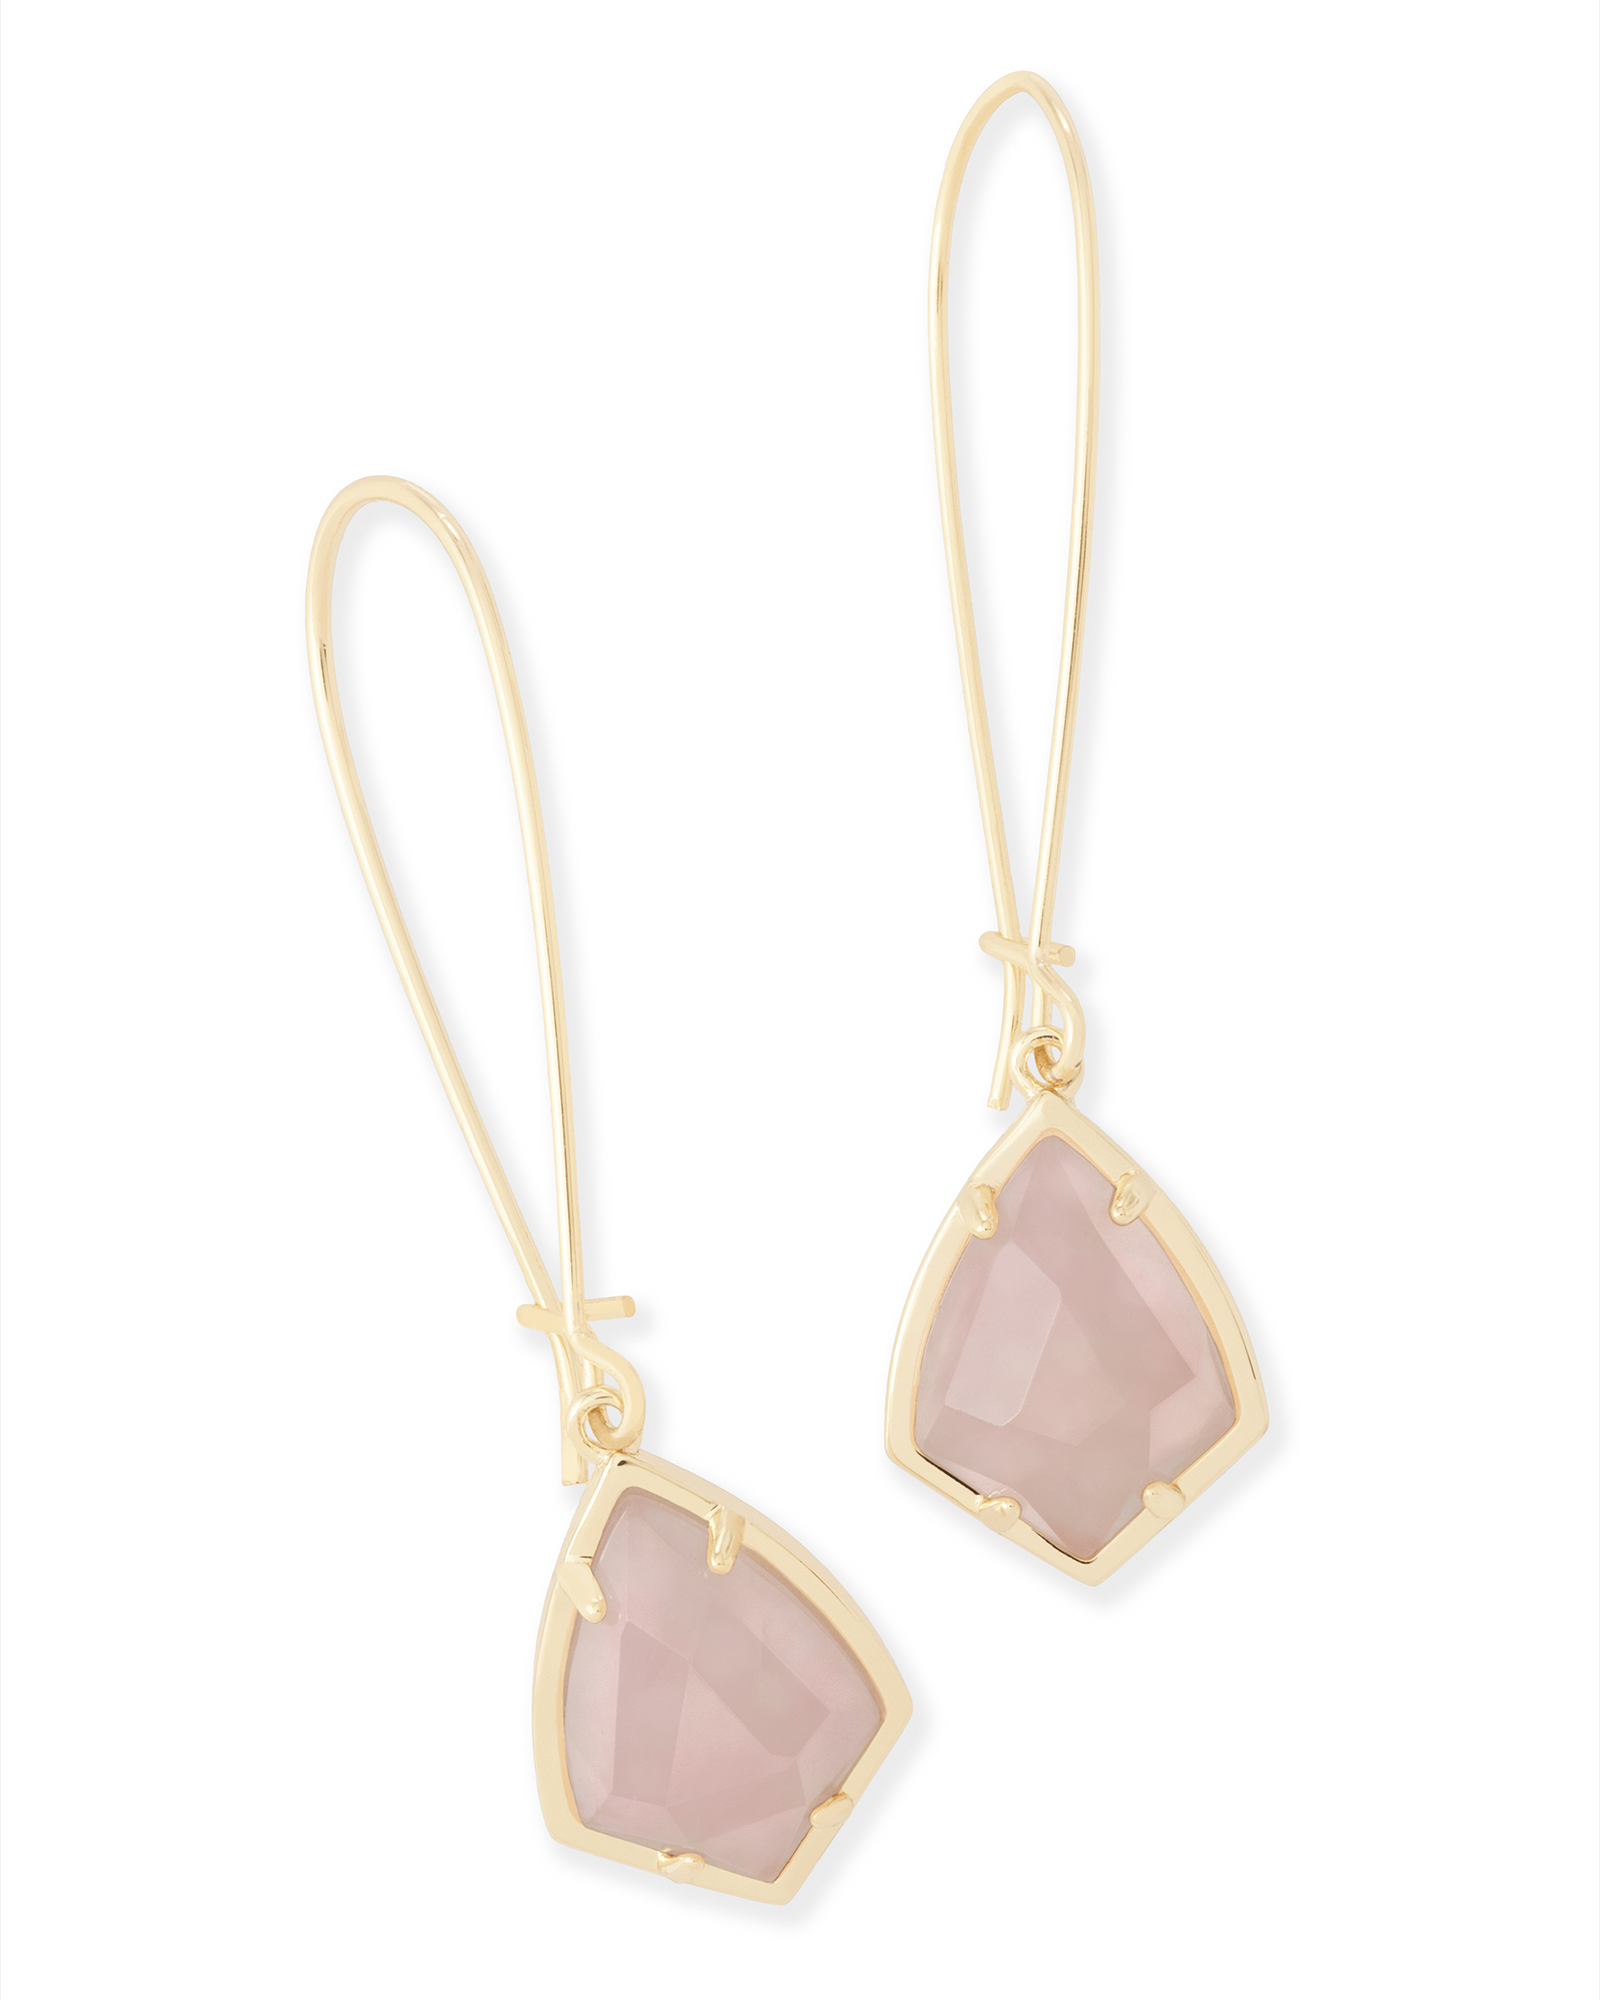 Carinne Drop Earrings in Rose Quartz